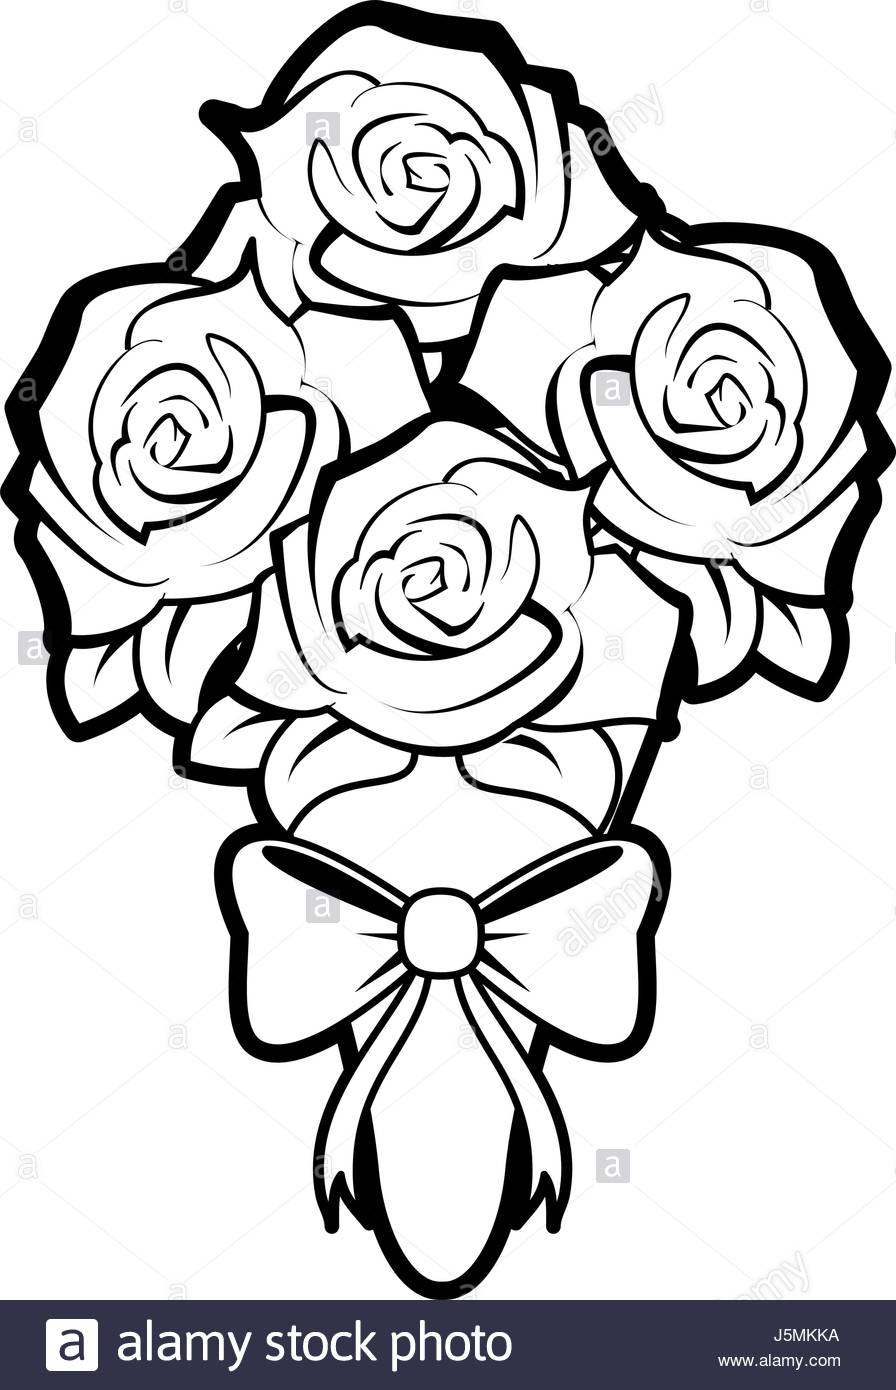 Wedding bouquet drawing at getdrawings free for personal use 896x1390 sketch silhouette image wedding bouquet of roses stock vector art izmirmasajfo